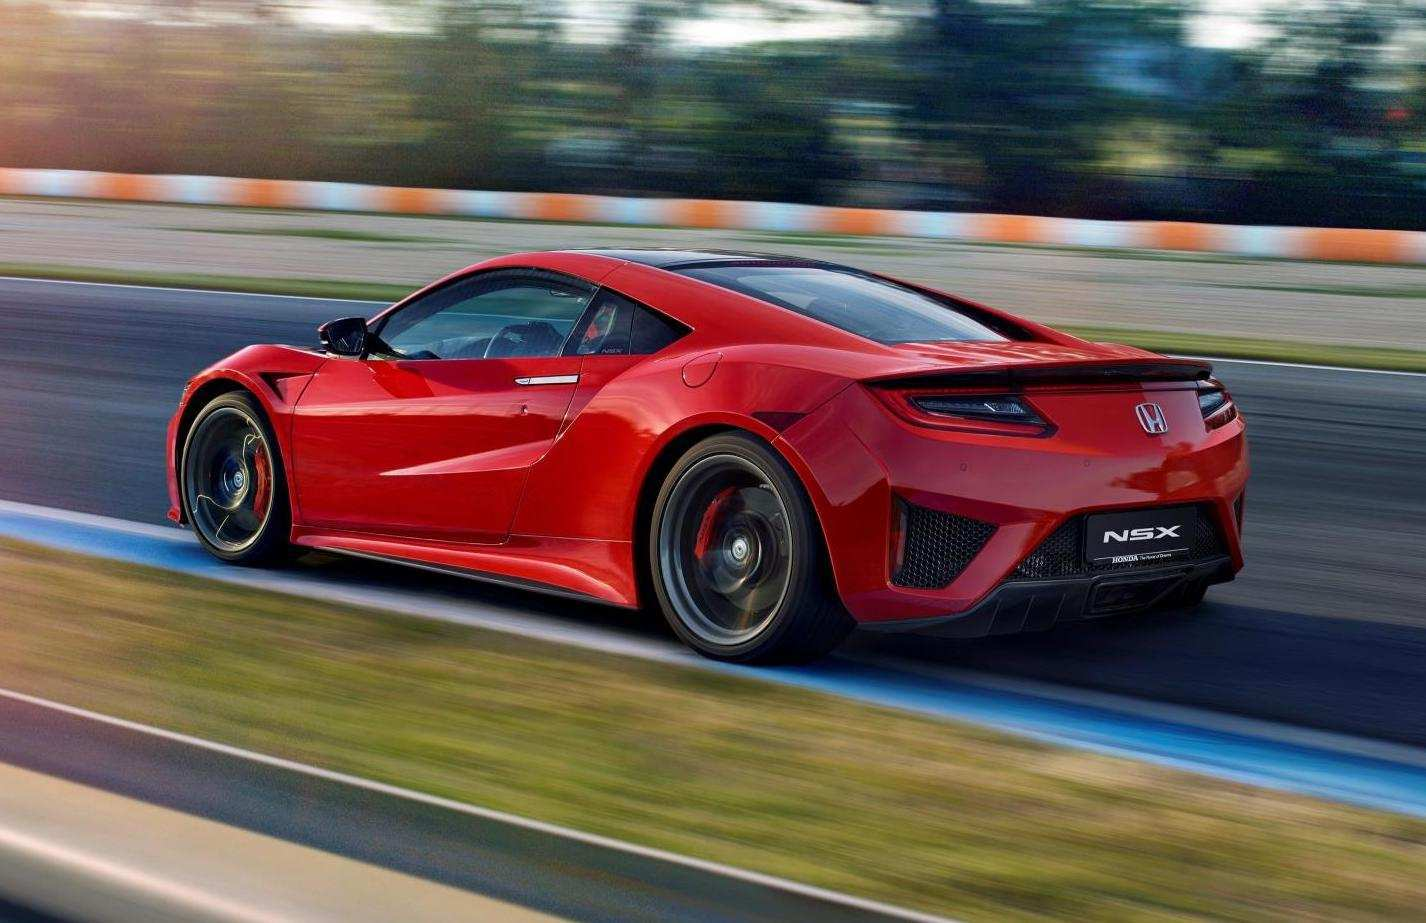 24 All New Honda Nsx Type R 2020 Specs and Review by Honda Nsx Type R 2020